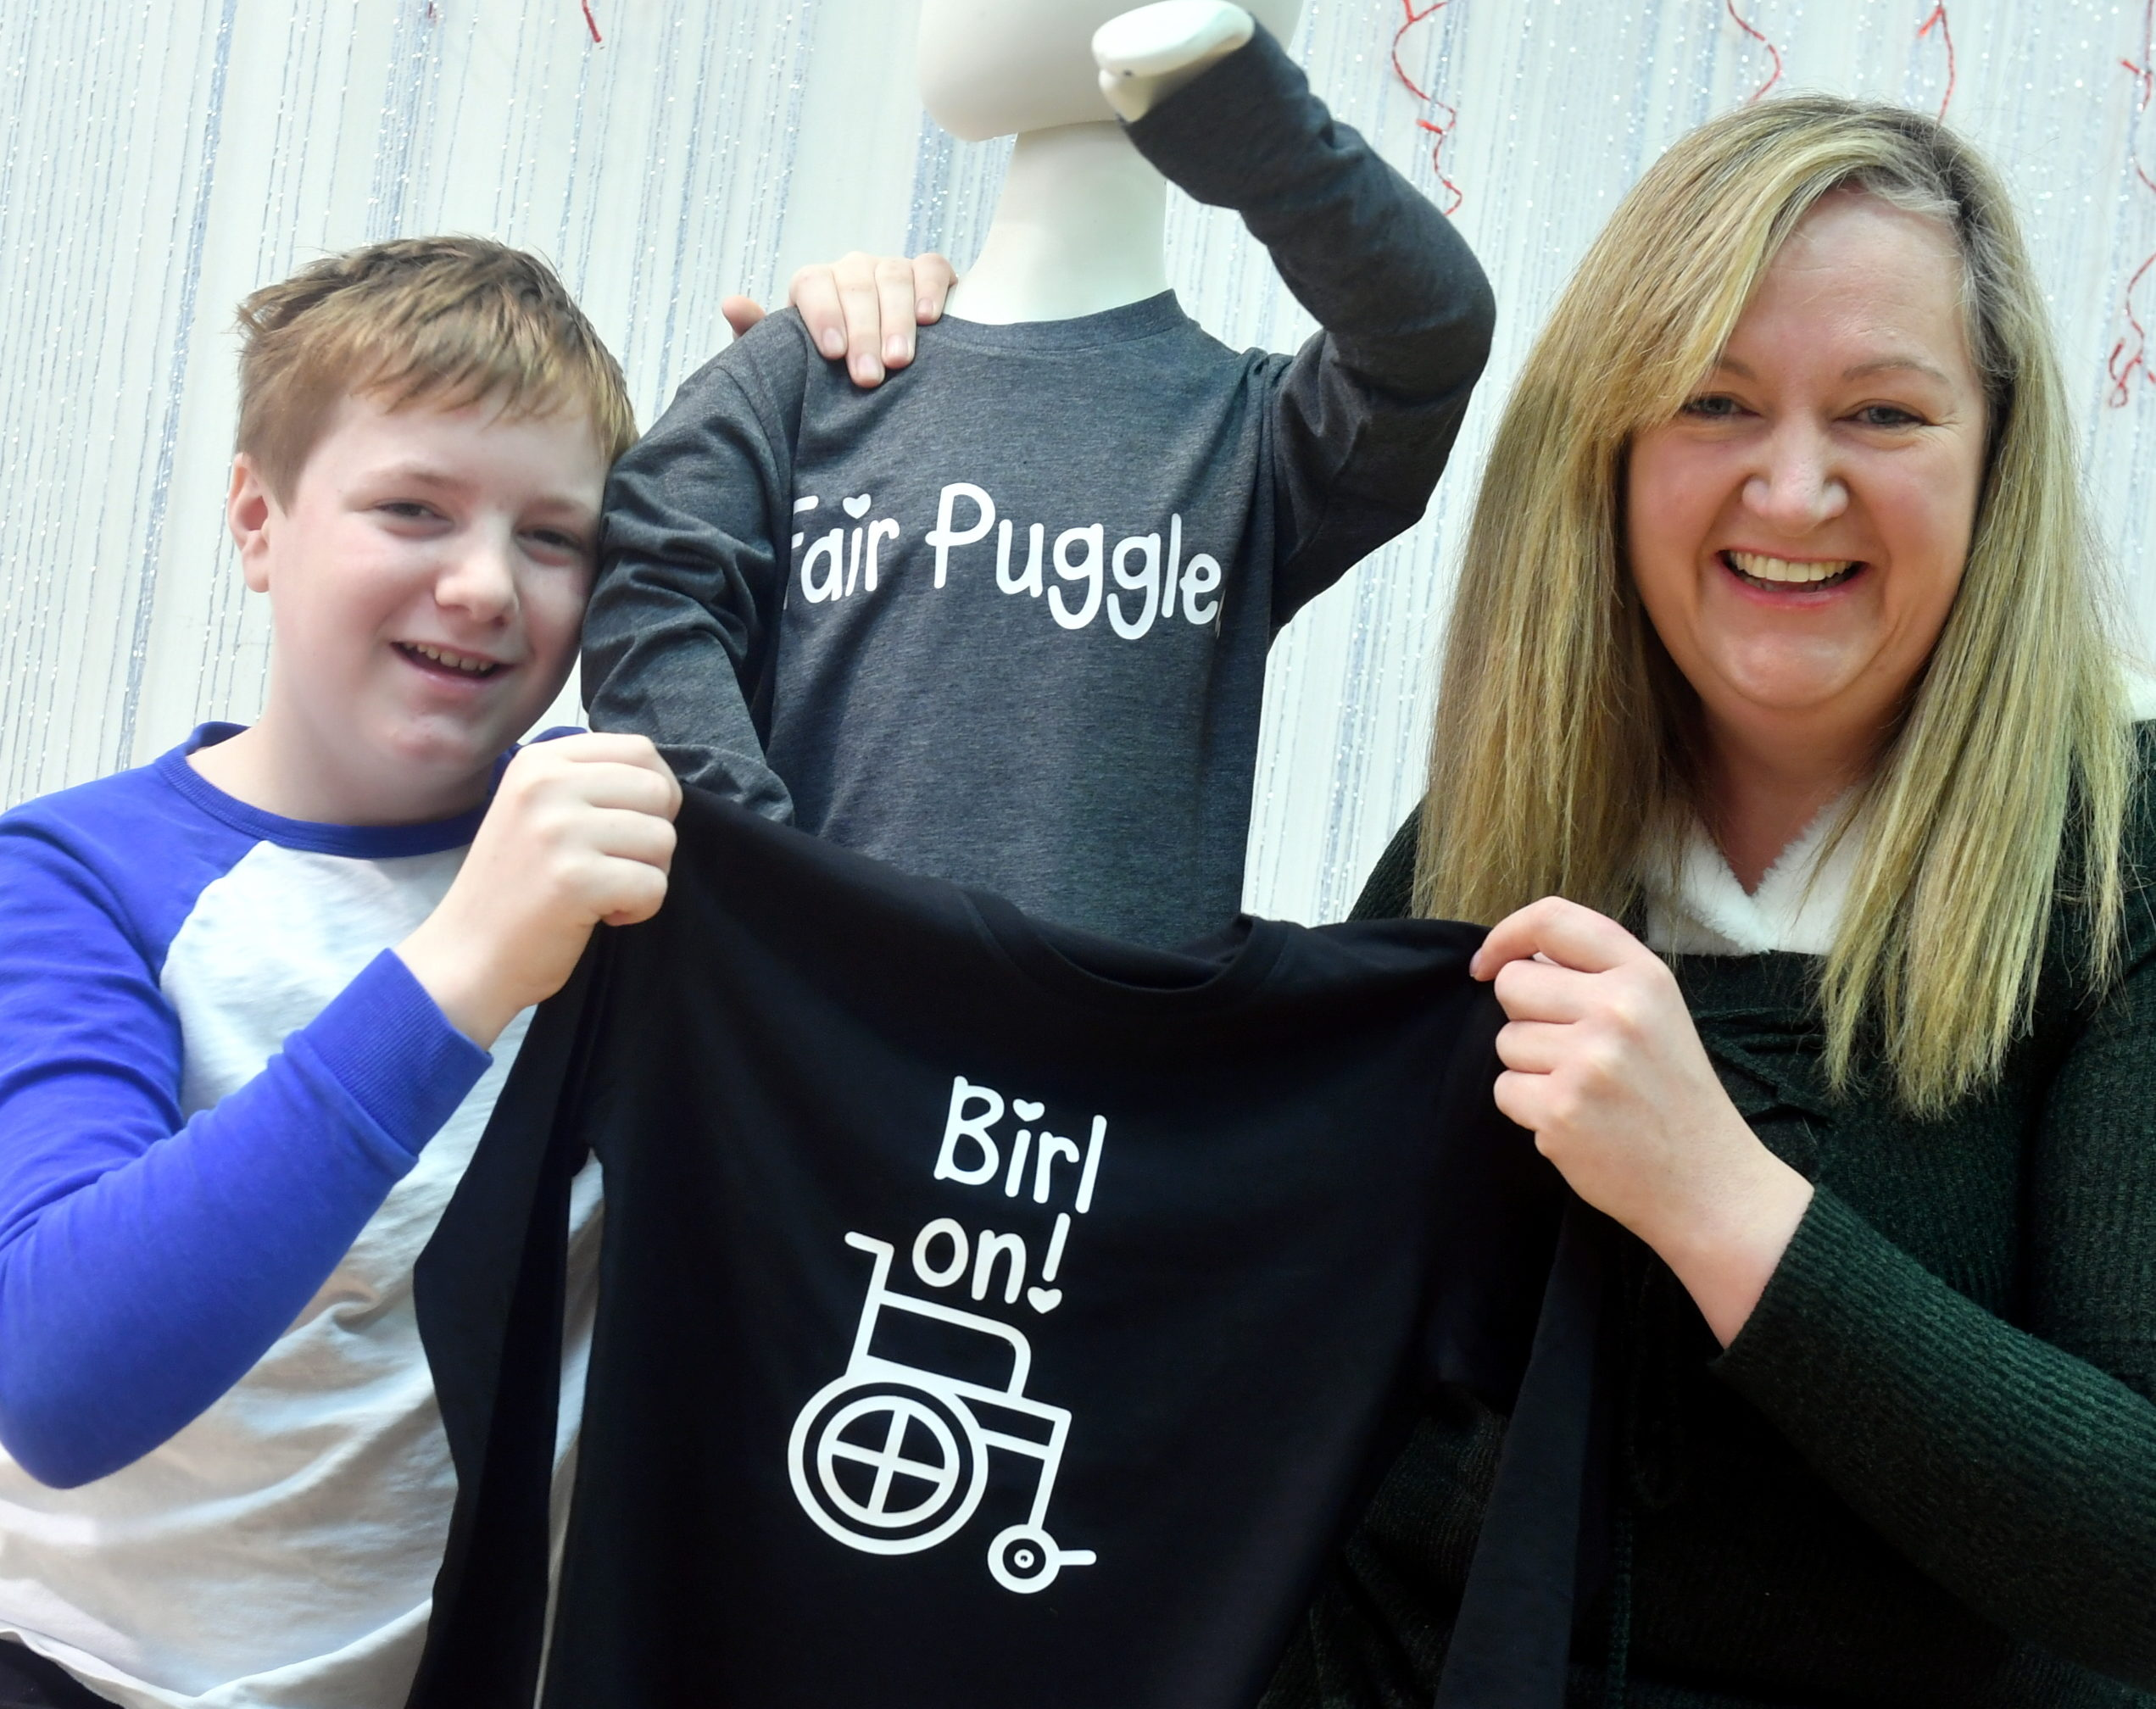 Mum (and charity founder) Phionna McInnes with her son Declan. Picture by Chris Sumner